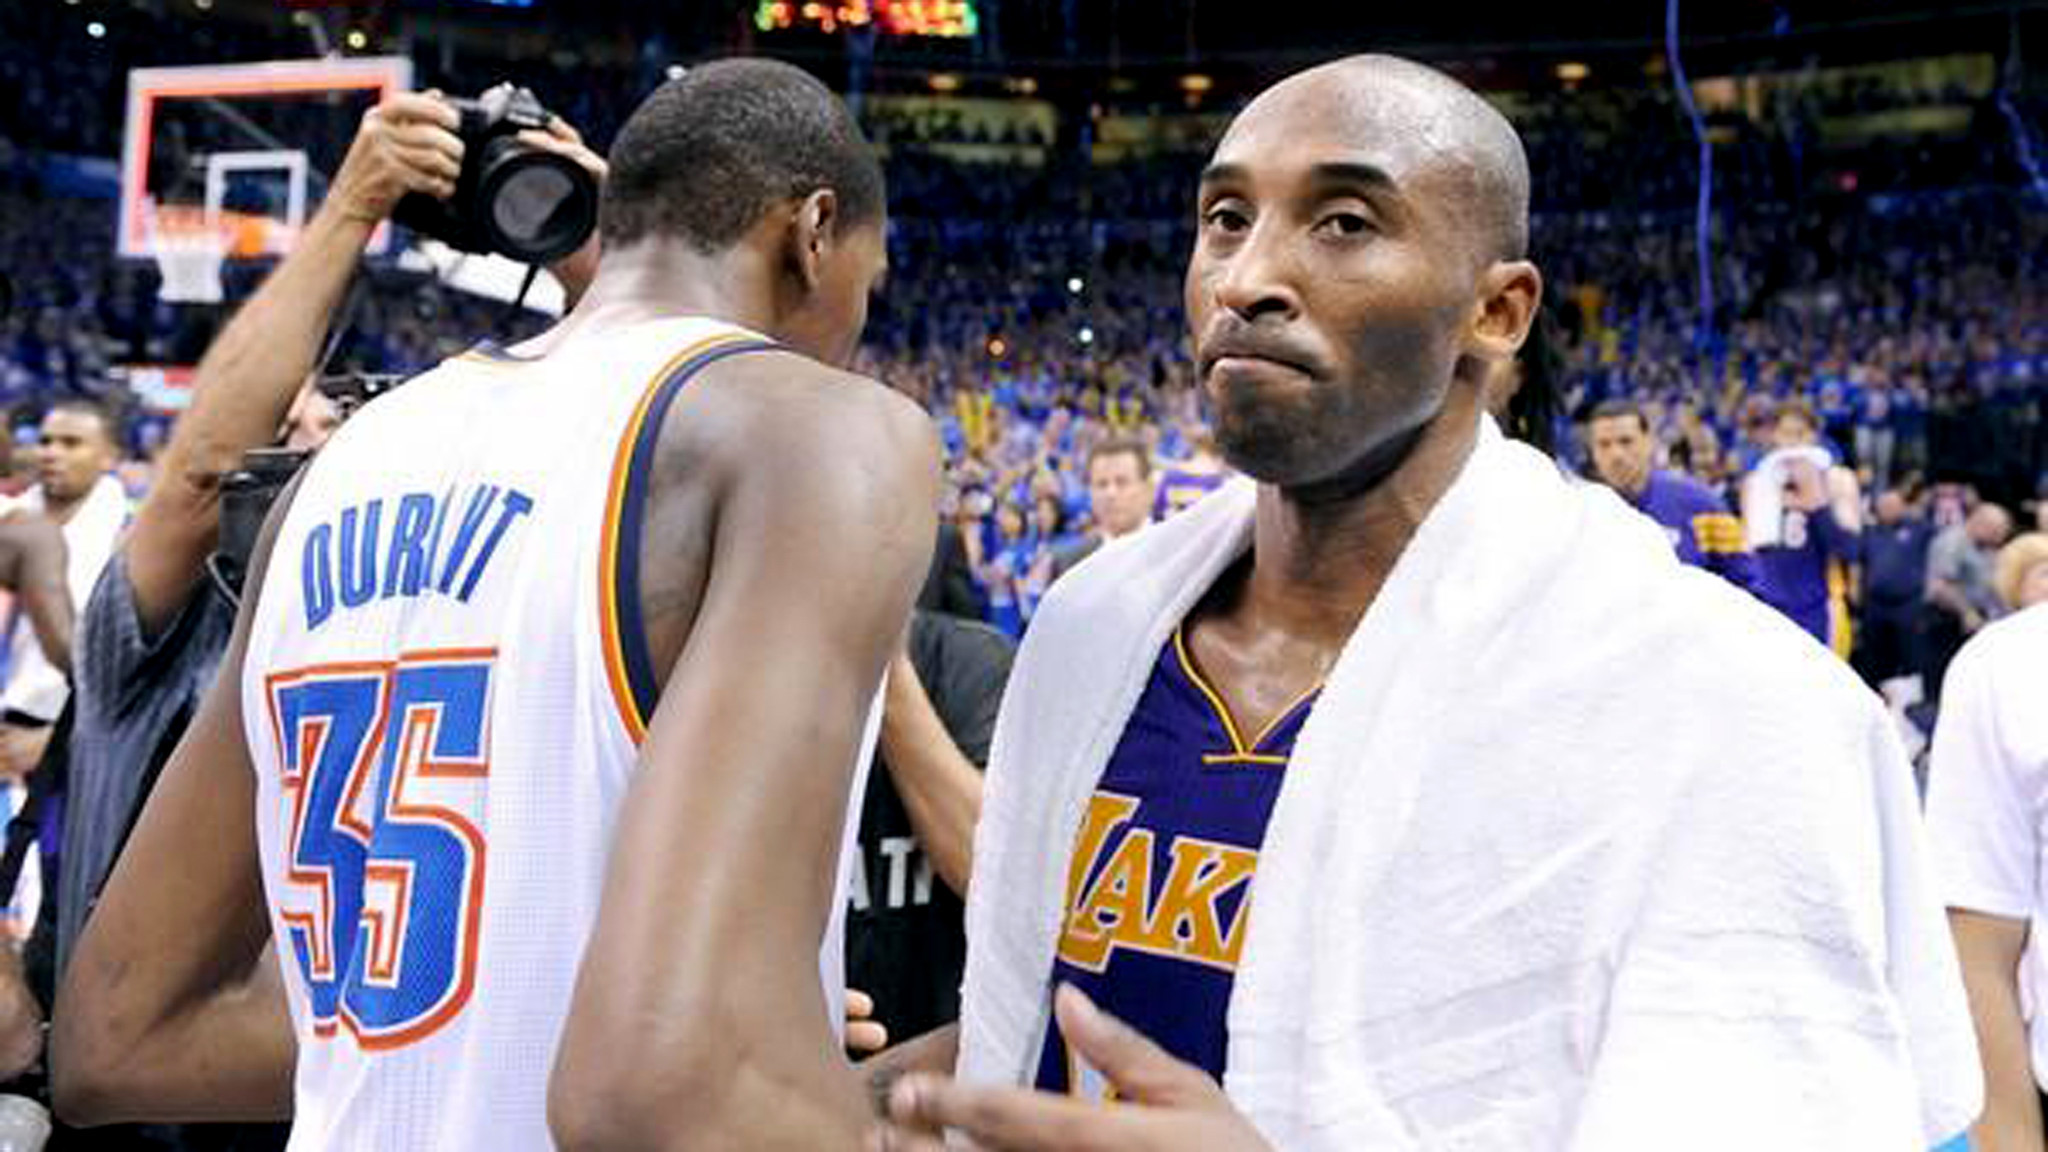 Lakers guard Kobe Bryant leaves the court after congratulating Thunder forward Kevin Durant following a 106-90 loss at Oklahoma City on Monday night.